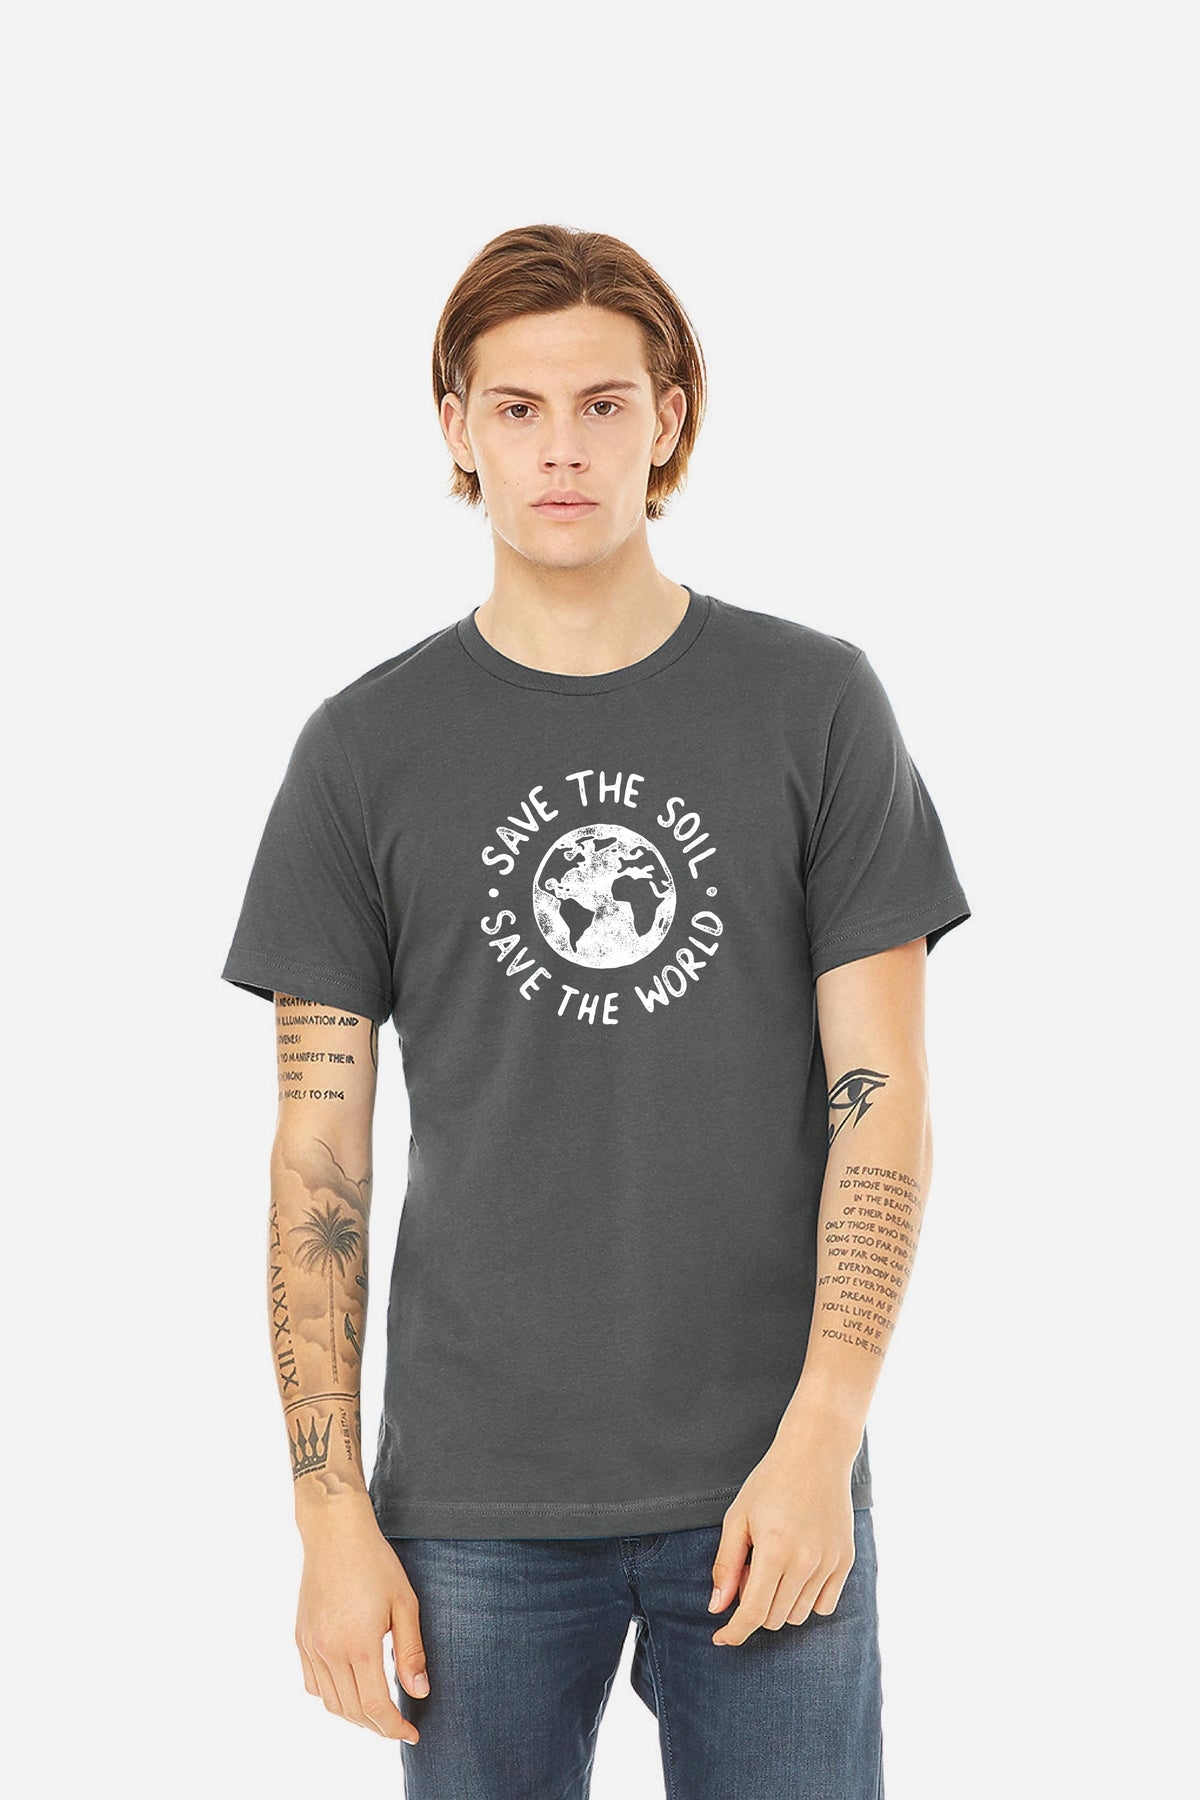 Save the Soil Tee